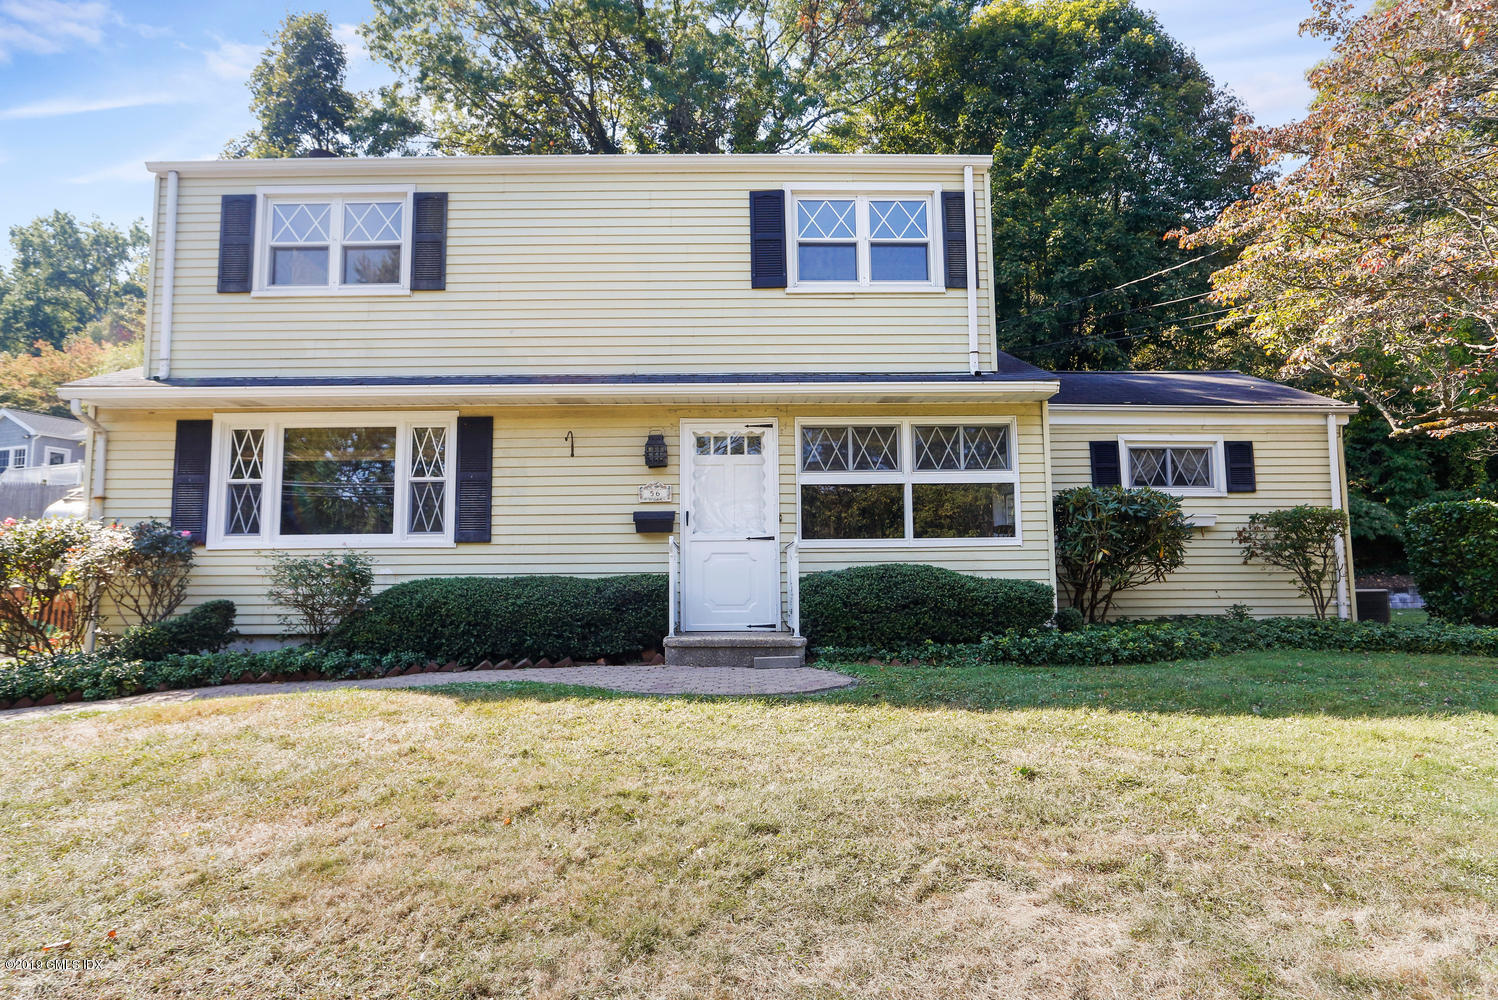 56 Caroline Place,Greenwich,Connecticut 06831,3 Bedrooms Bedrooms,2 BathroomsBathrooms,Single family,Caroline,108049